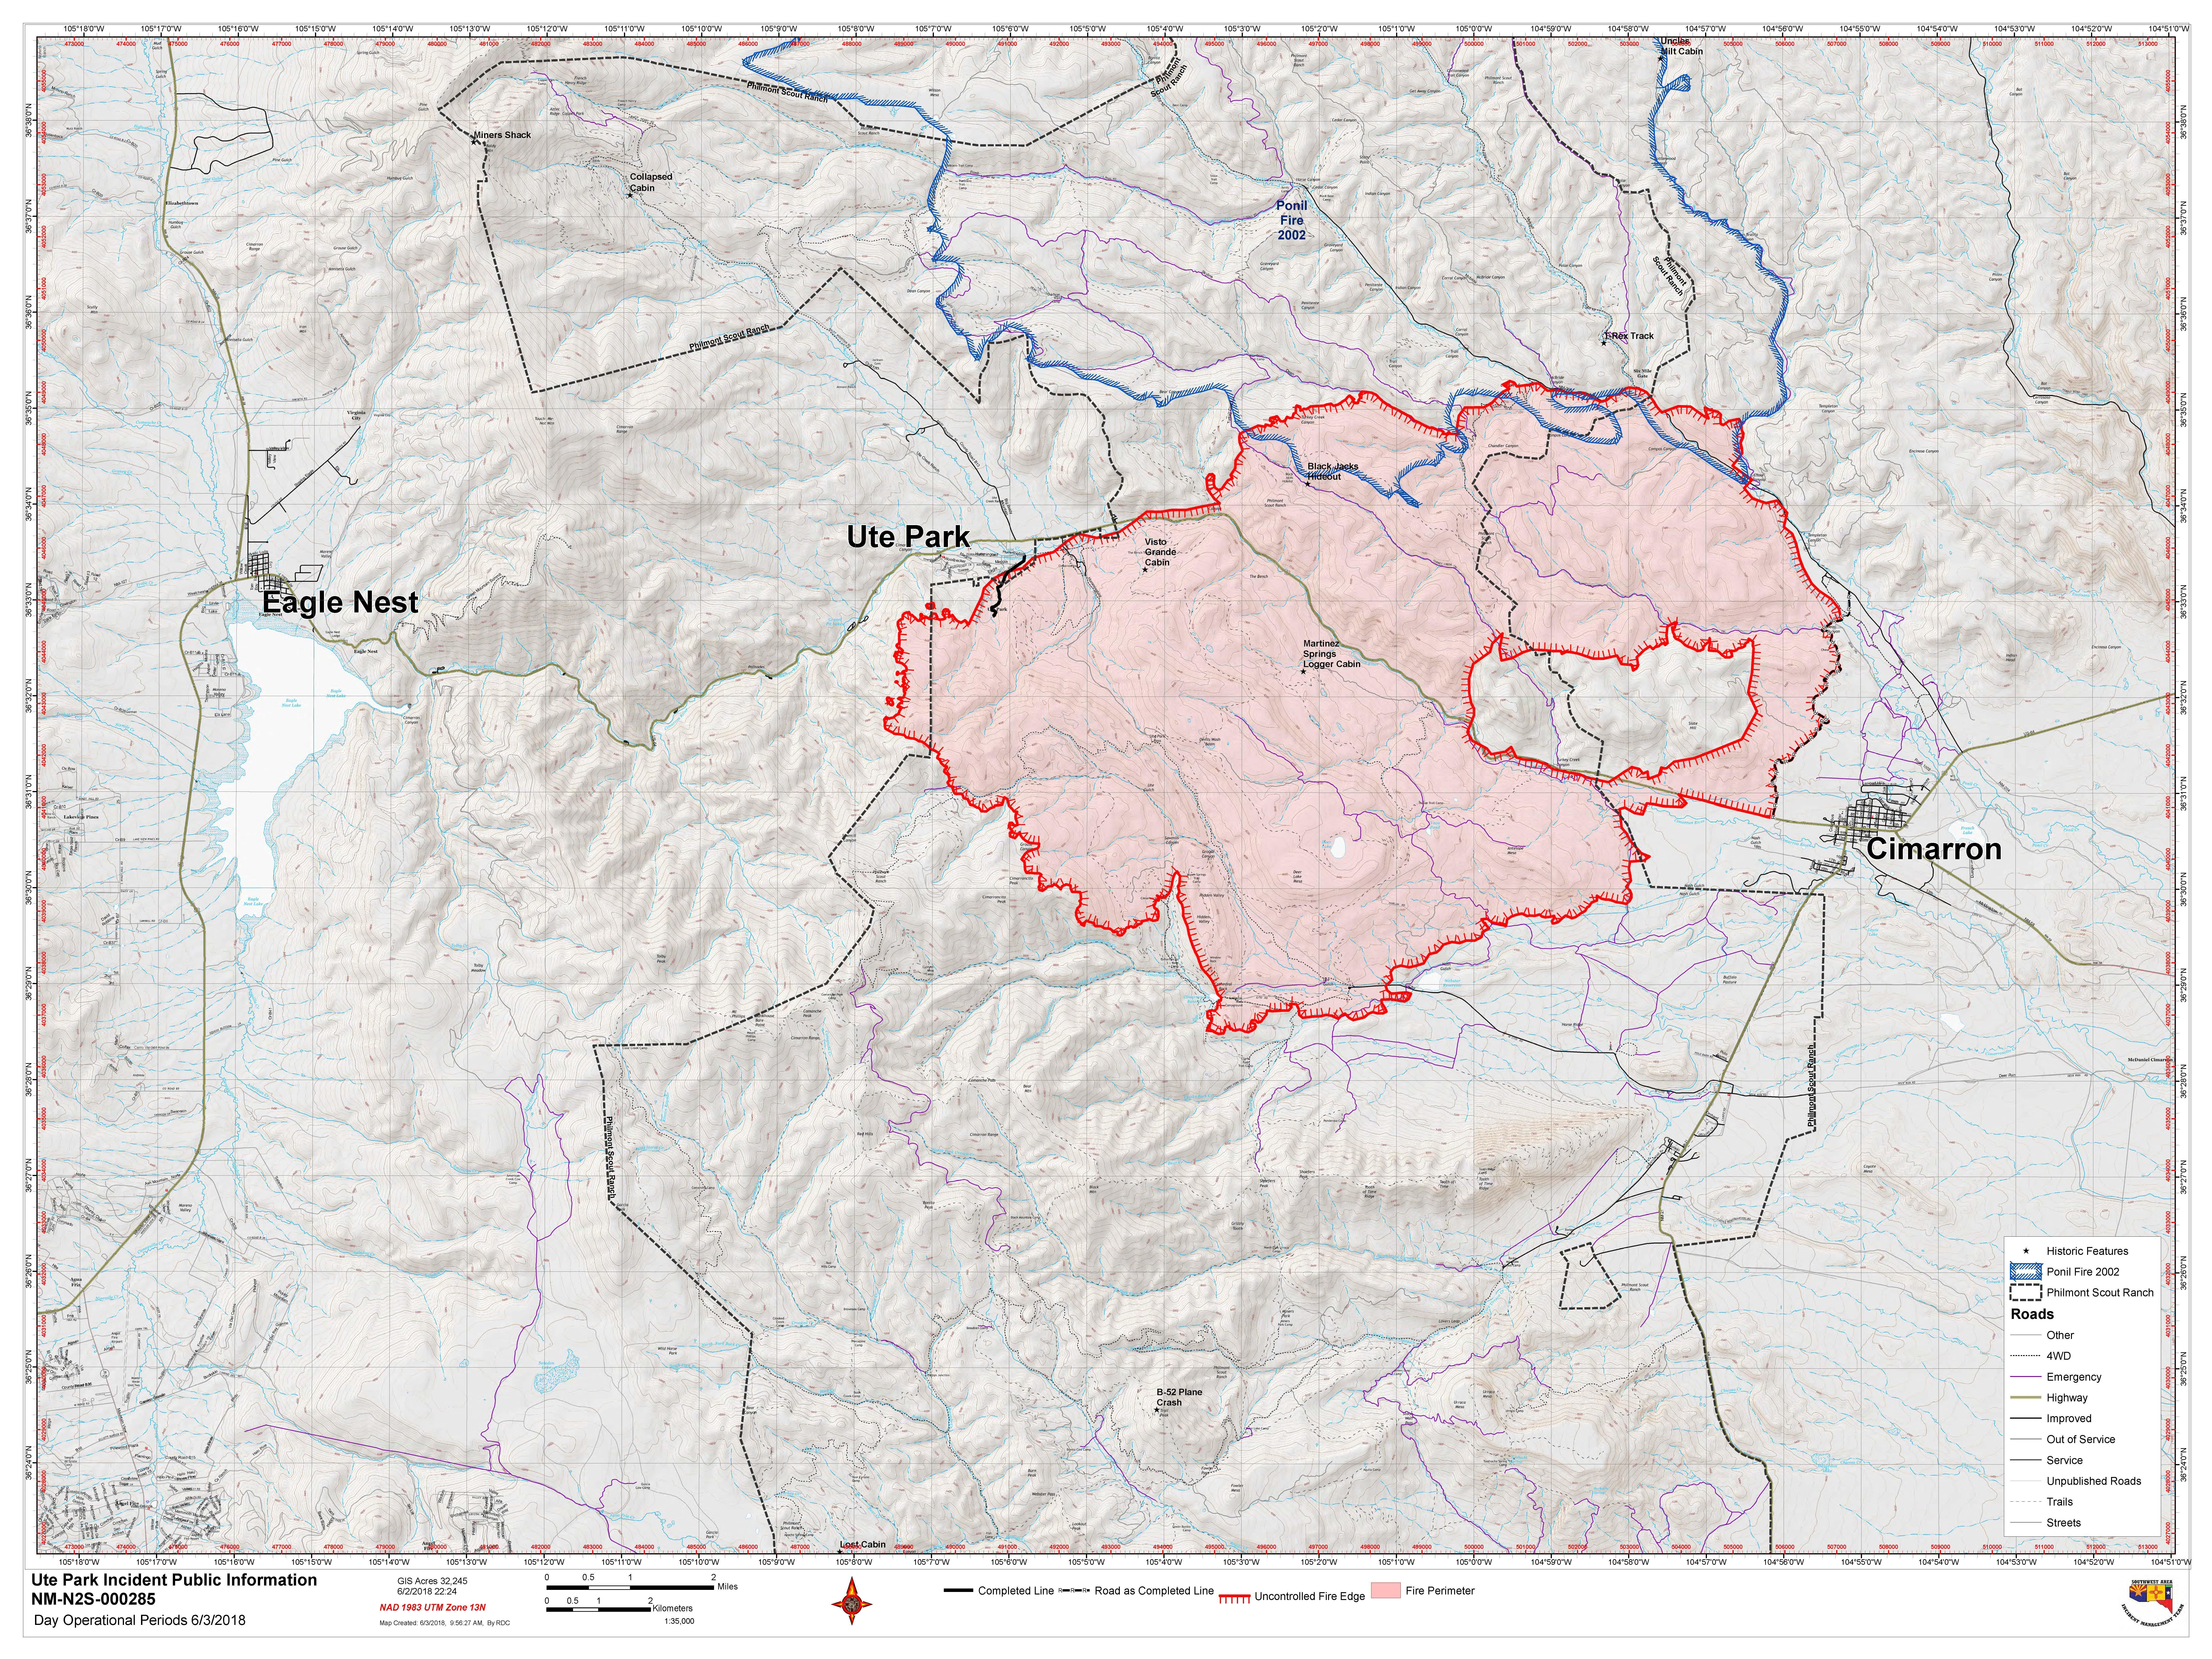 Ute Park Fire Monday update Cimarron Evacuation Order Lifted ...